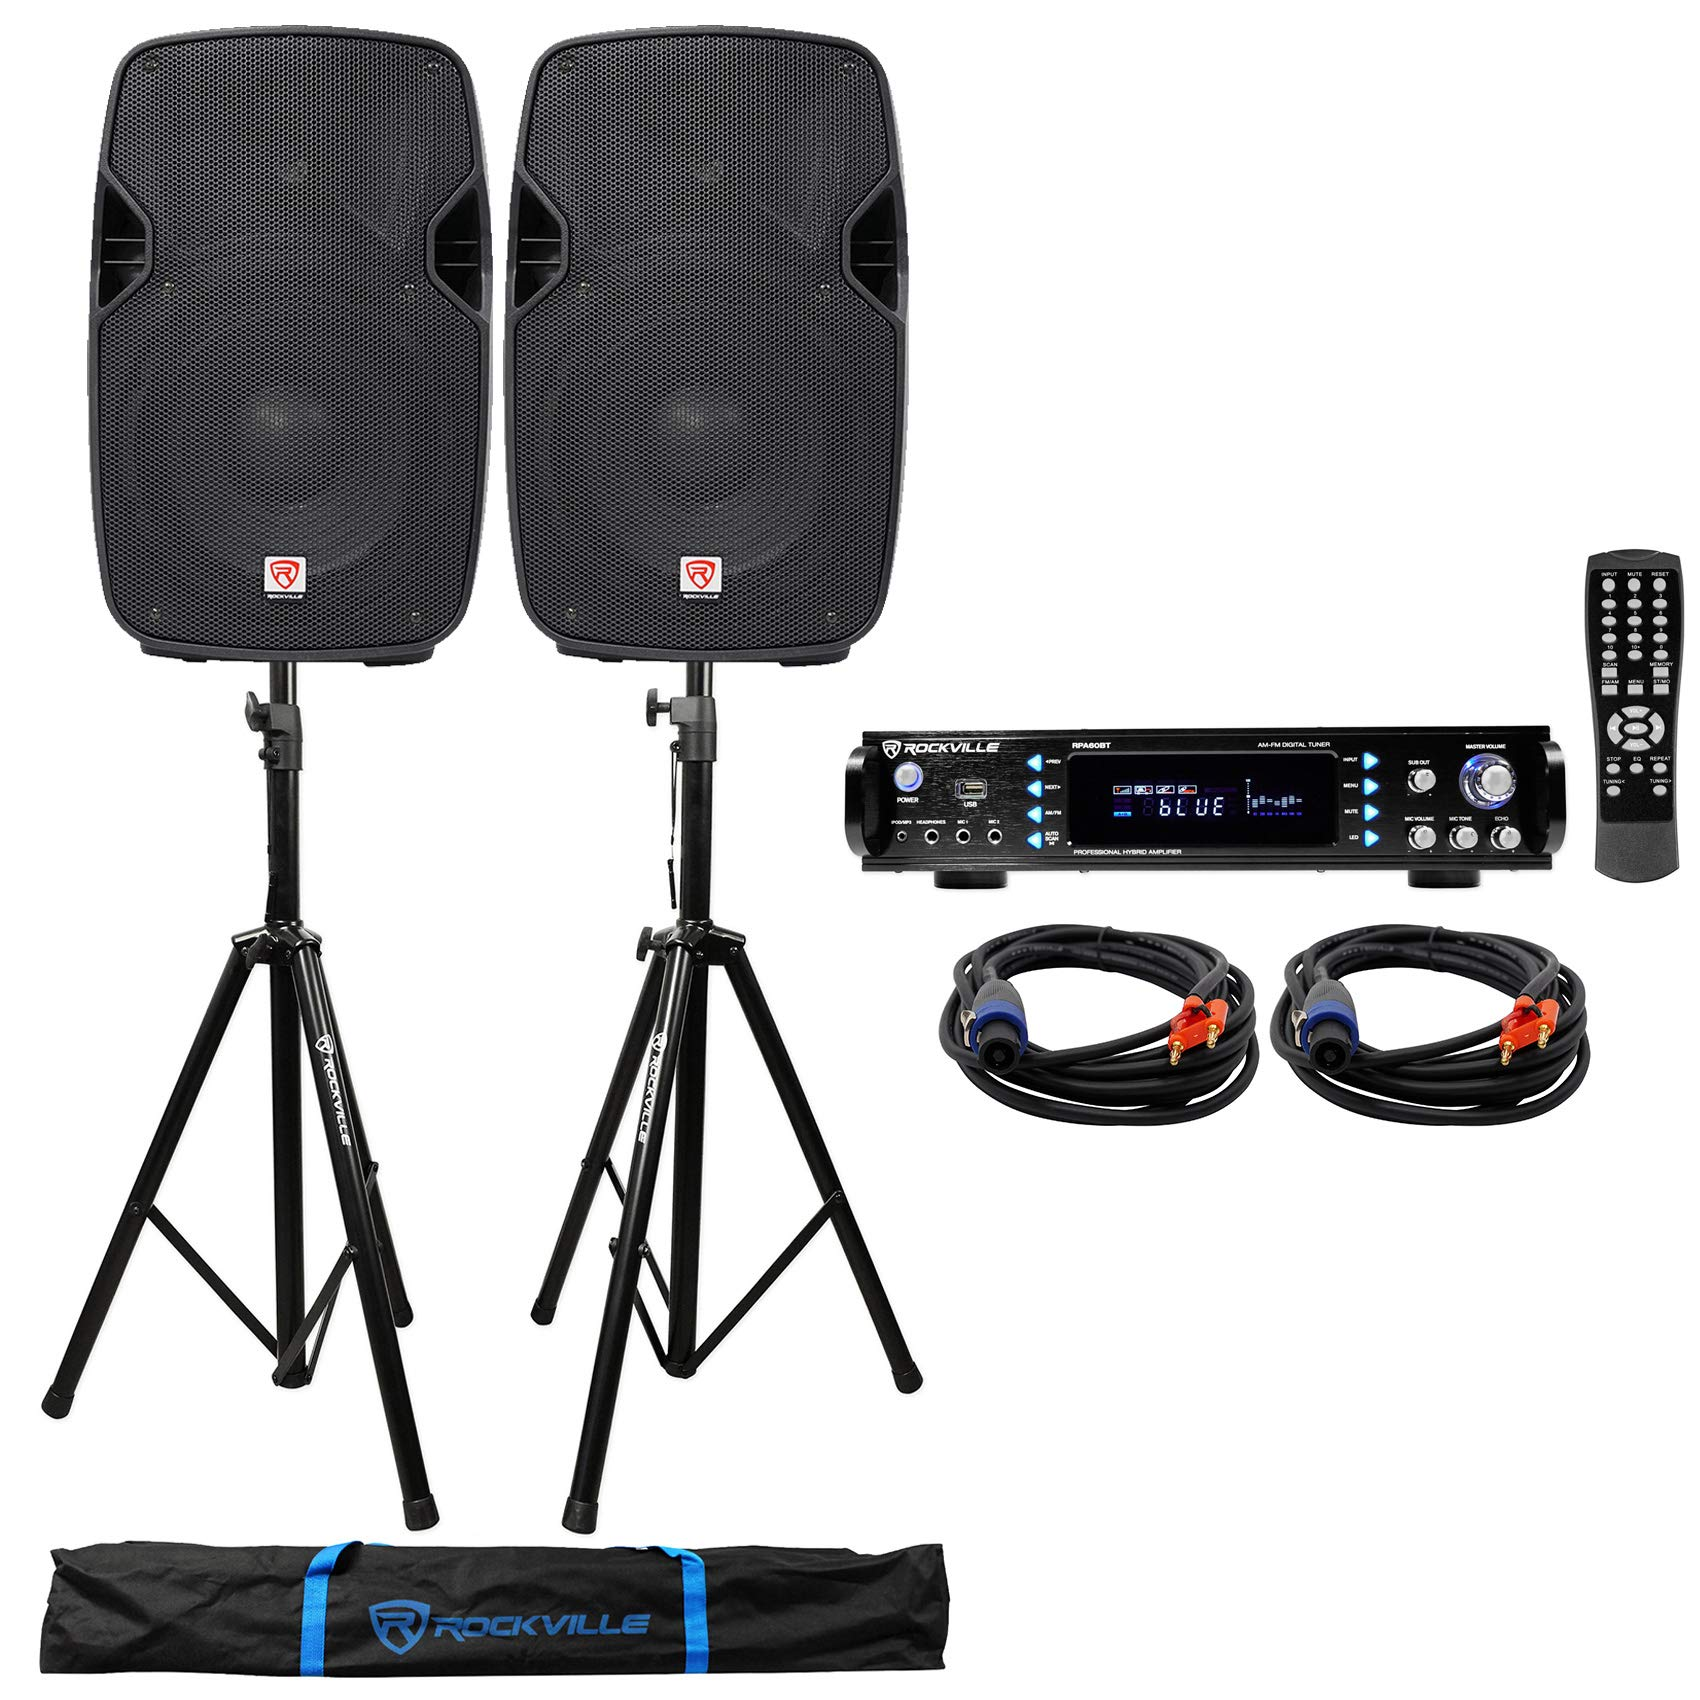 (2) Rockville SPGN104 10'' 1600w DJ PA Speakers+Bluetooth Amplifier+Stands+Cables by Rockville